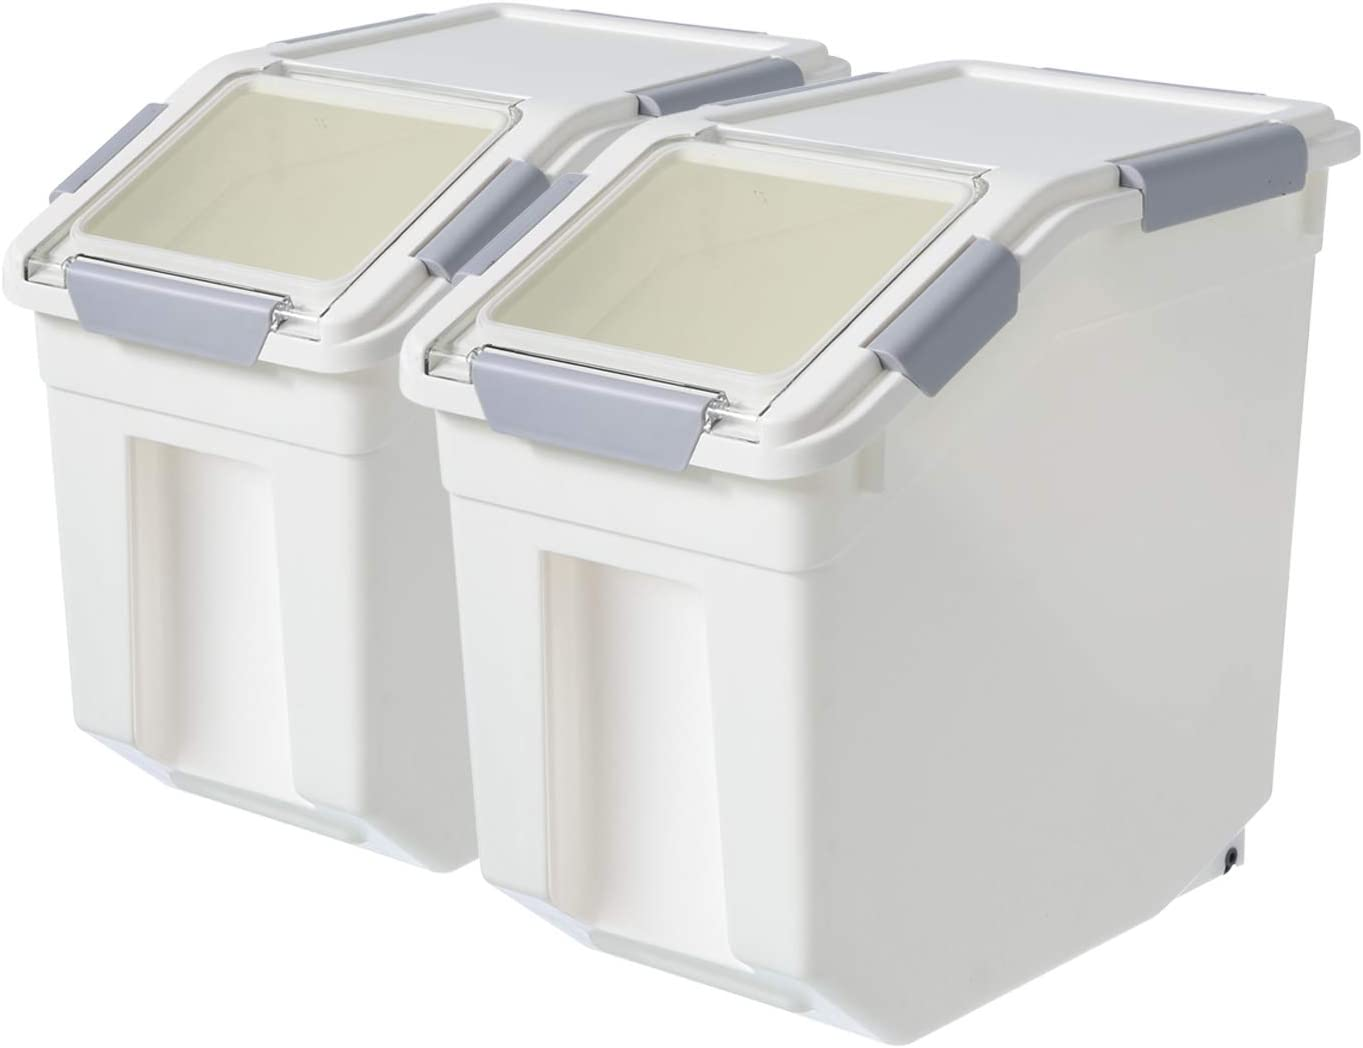 2 Pack Airtight Flour Storage Container With Scoop,Dry Food, Sugar, Baking Supplies,Rice Container Set -BPA Free- Pet Food Storage Container,Dog Cat Birds Food Bin(20 lb)